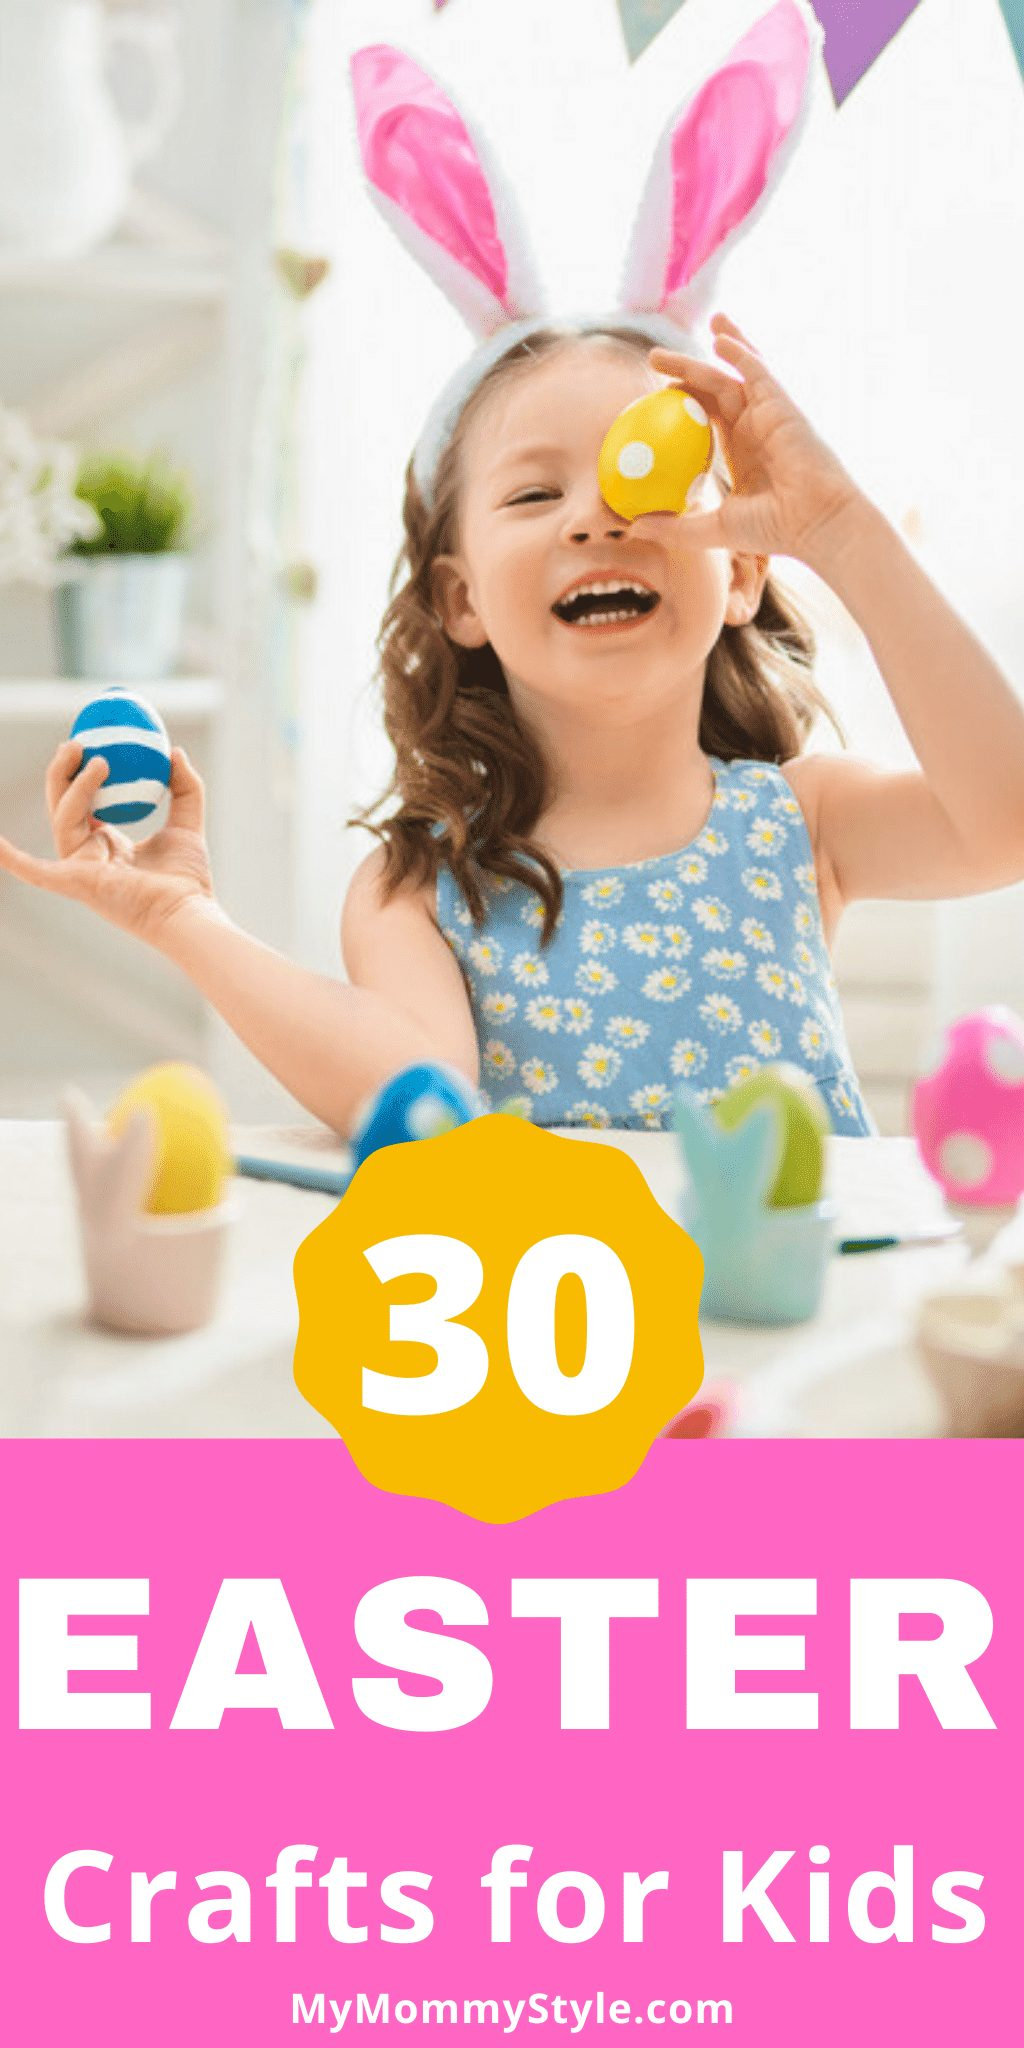 30 Easter Crafts For Kids via @mymommystyle